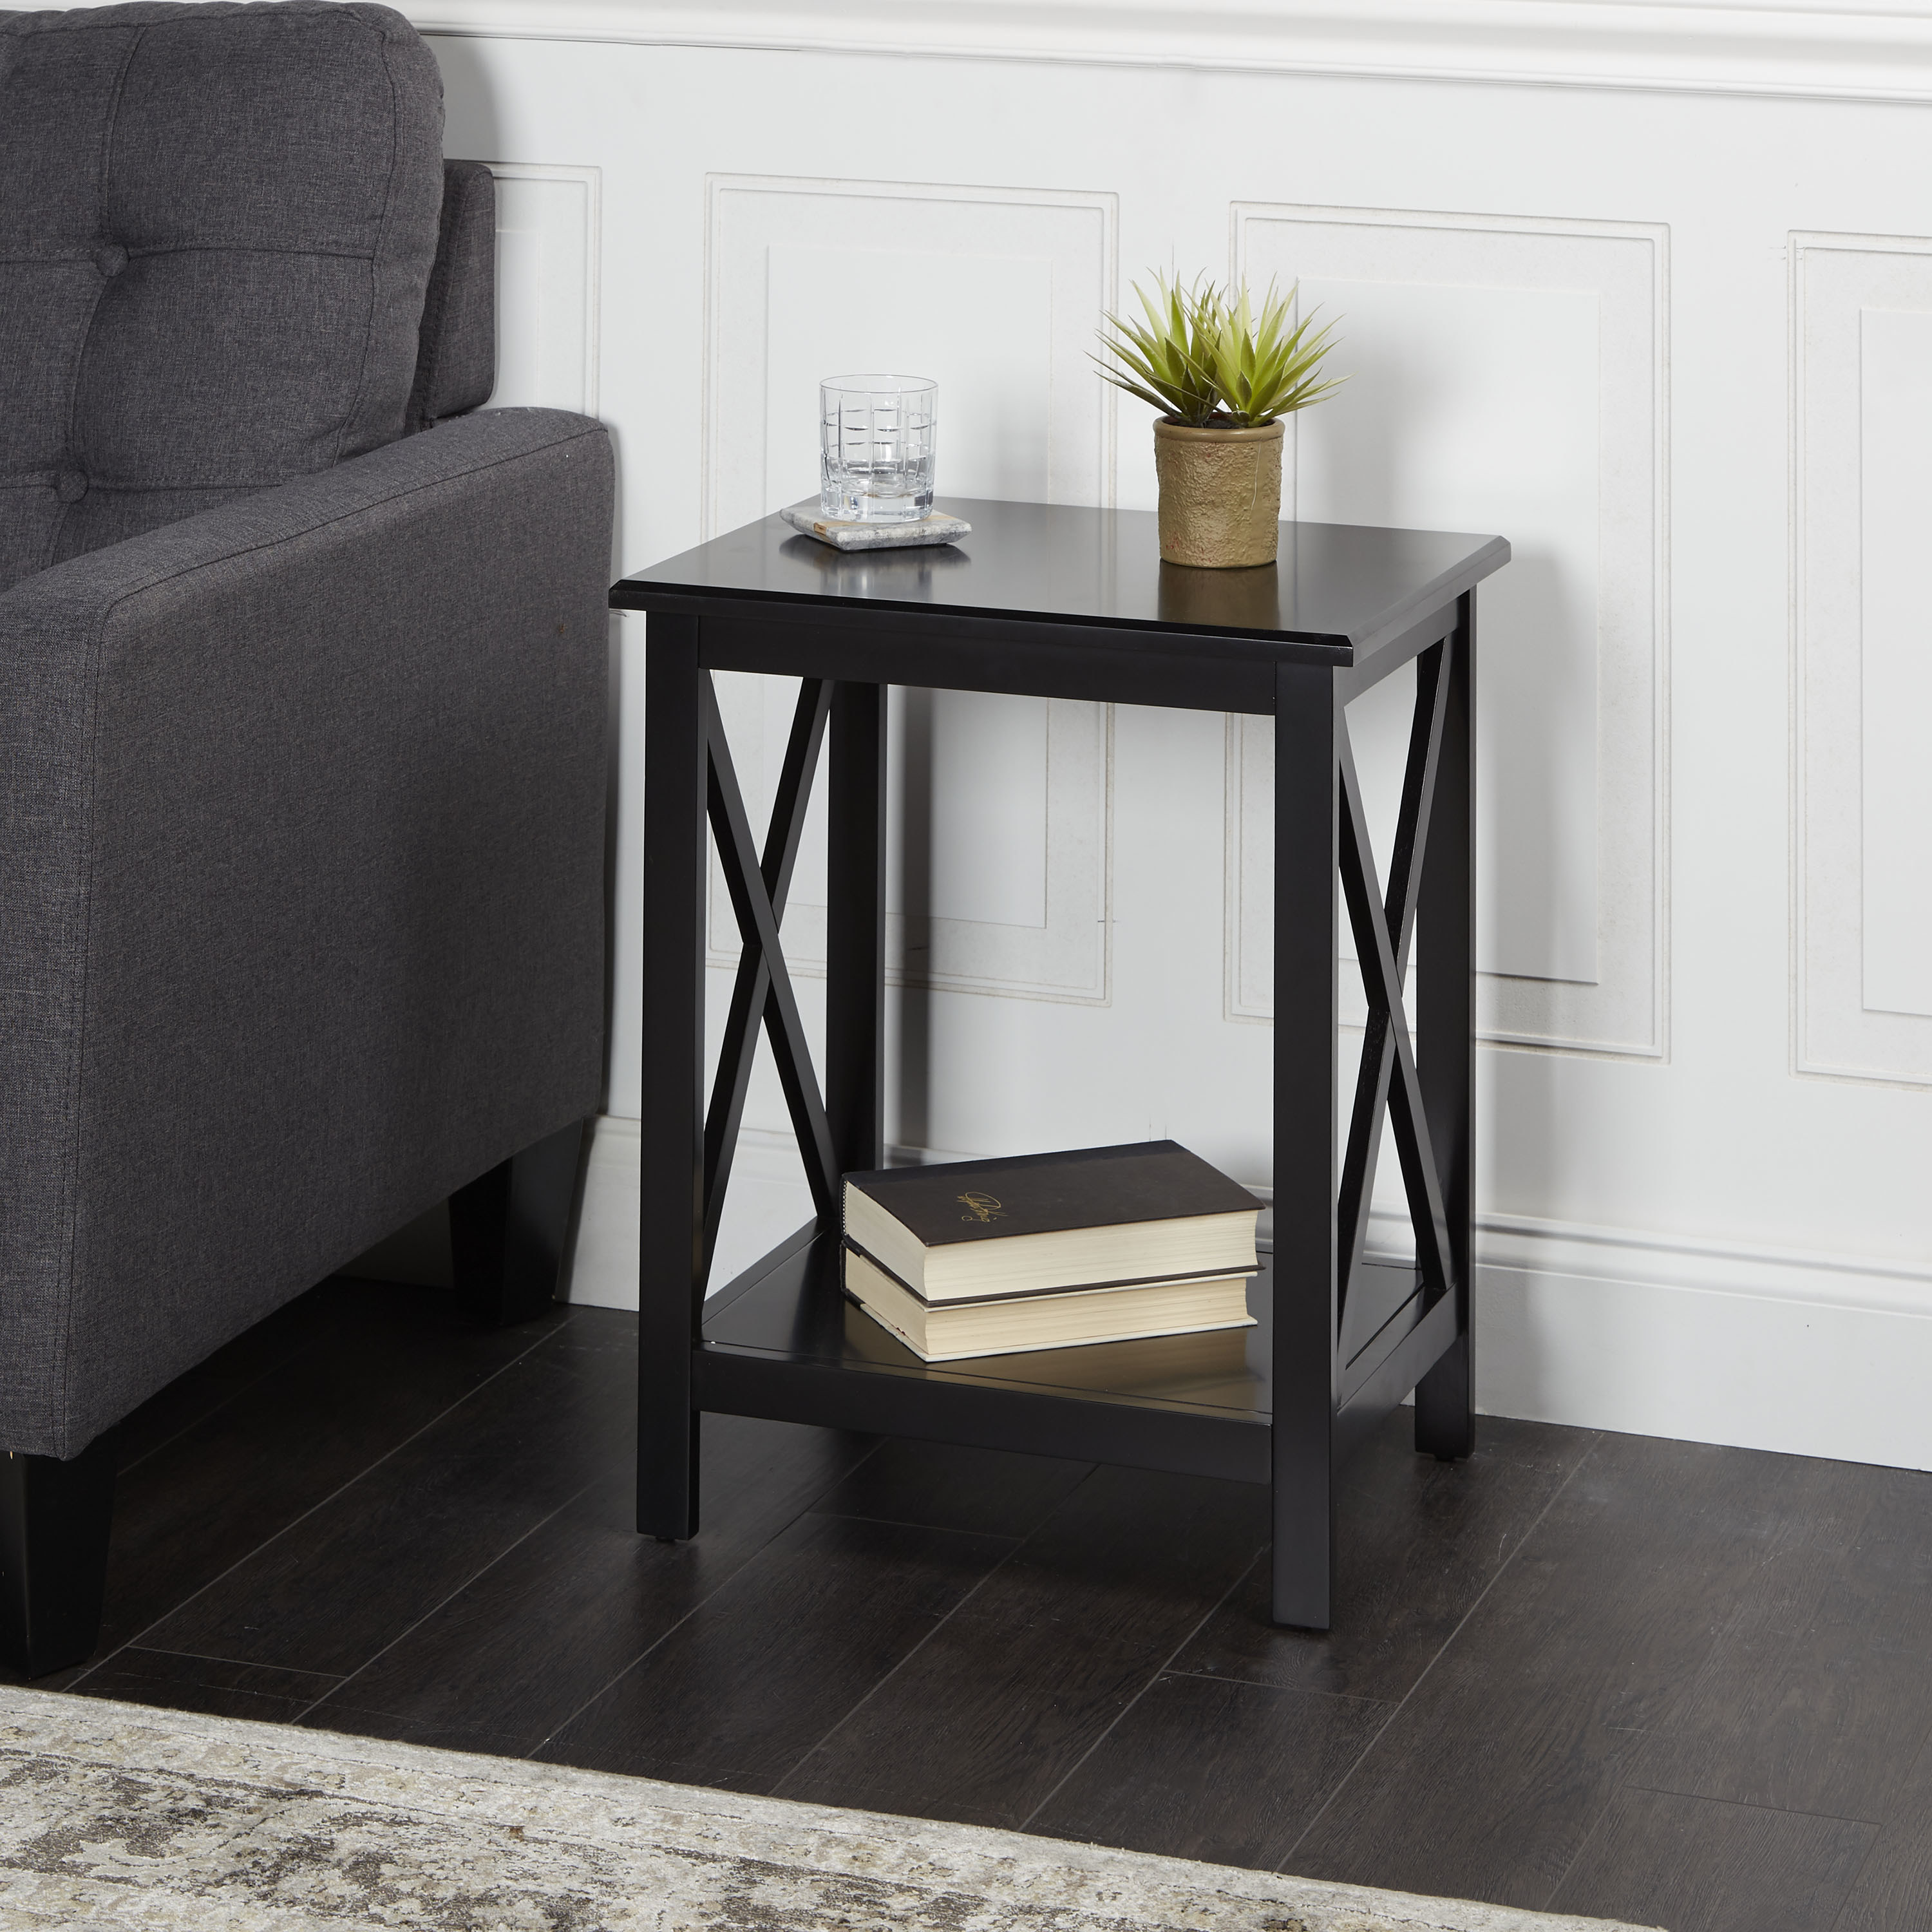 The black accent table